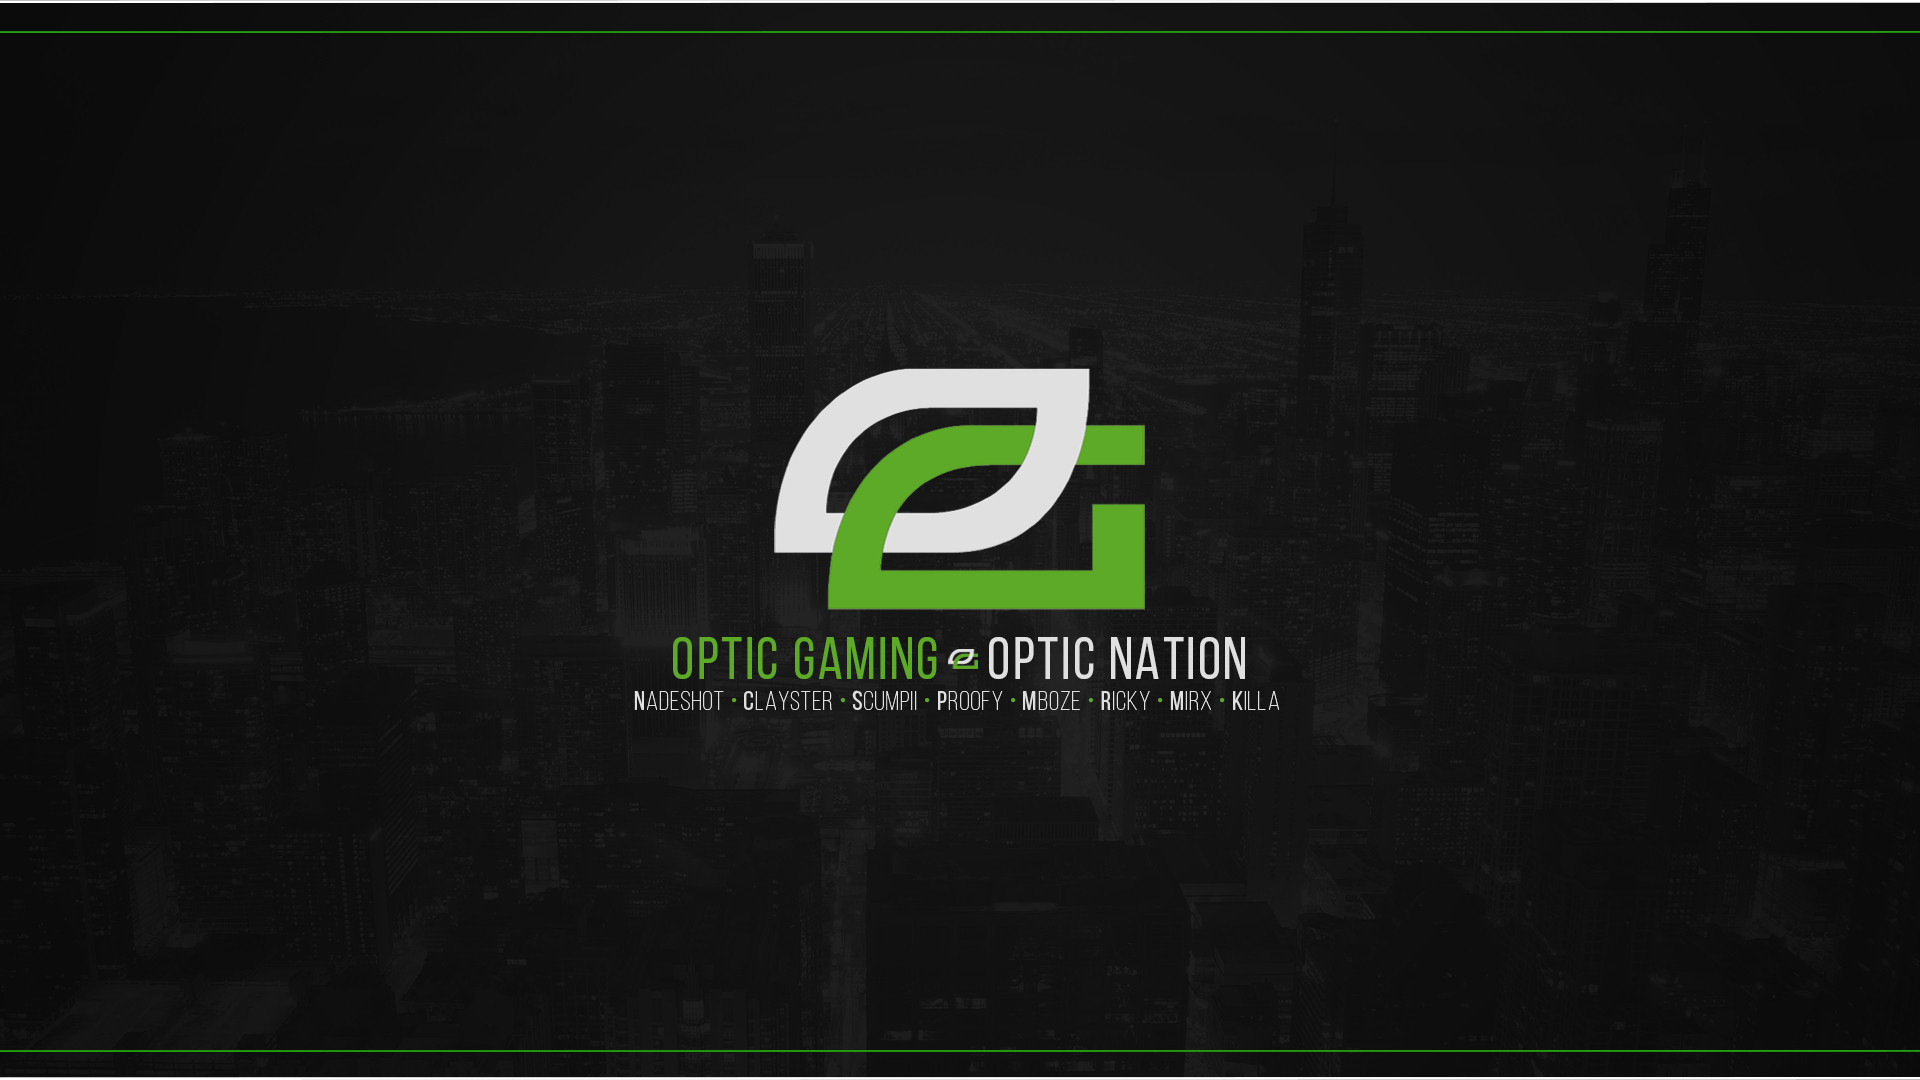 Download Optic Gaming Wallpaper Iphone Hd Backgrounds